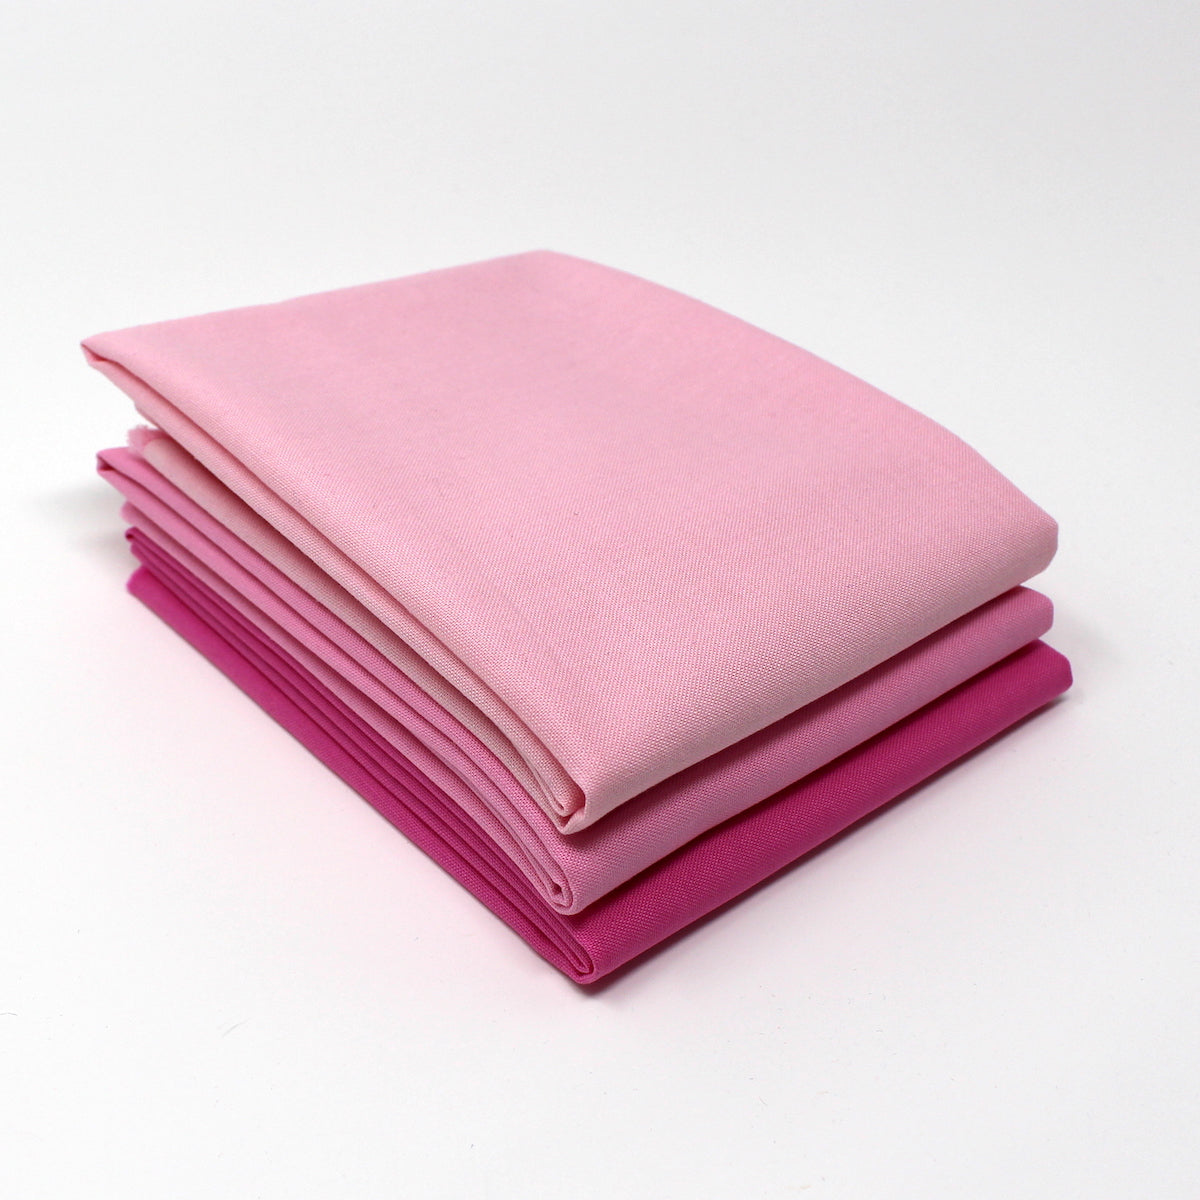 Magenta Light 3 Fat Quarter Bundle - Kona Cotton